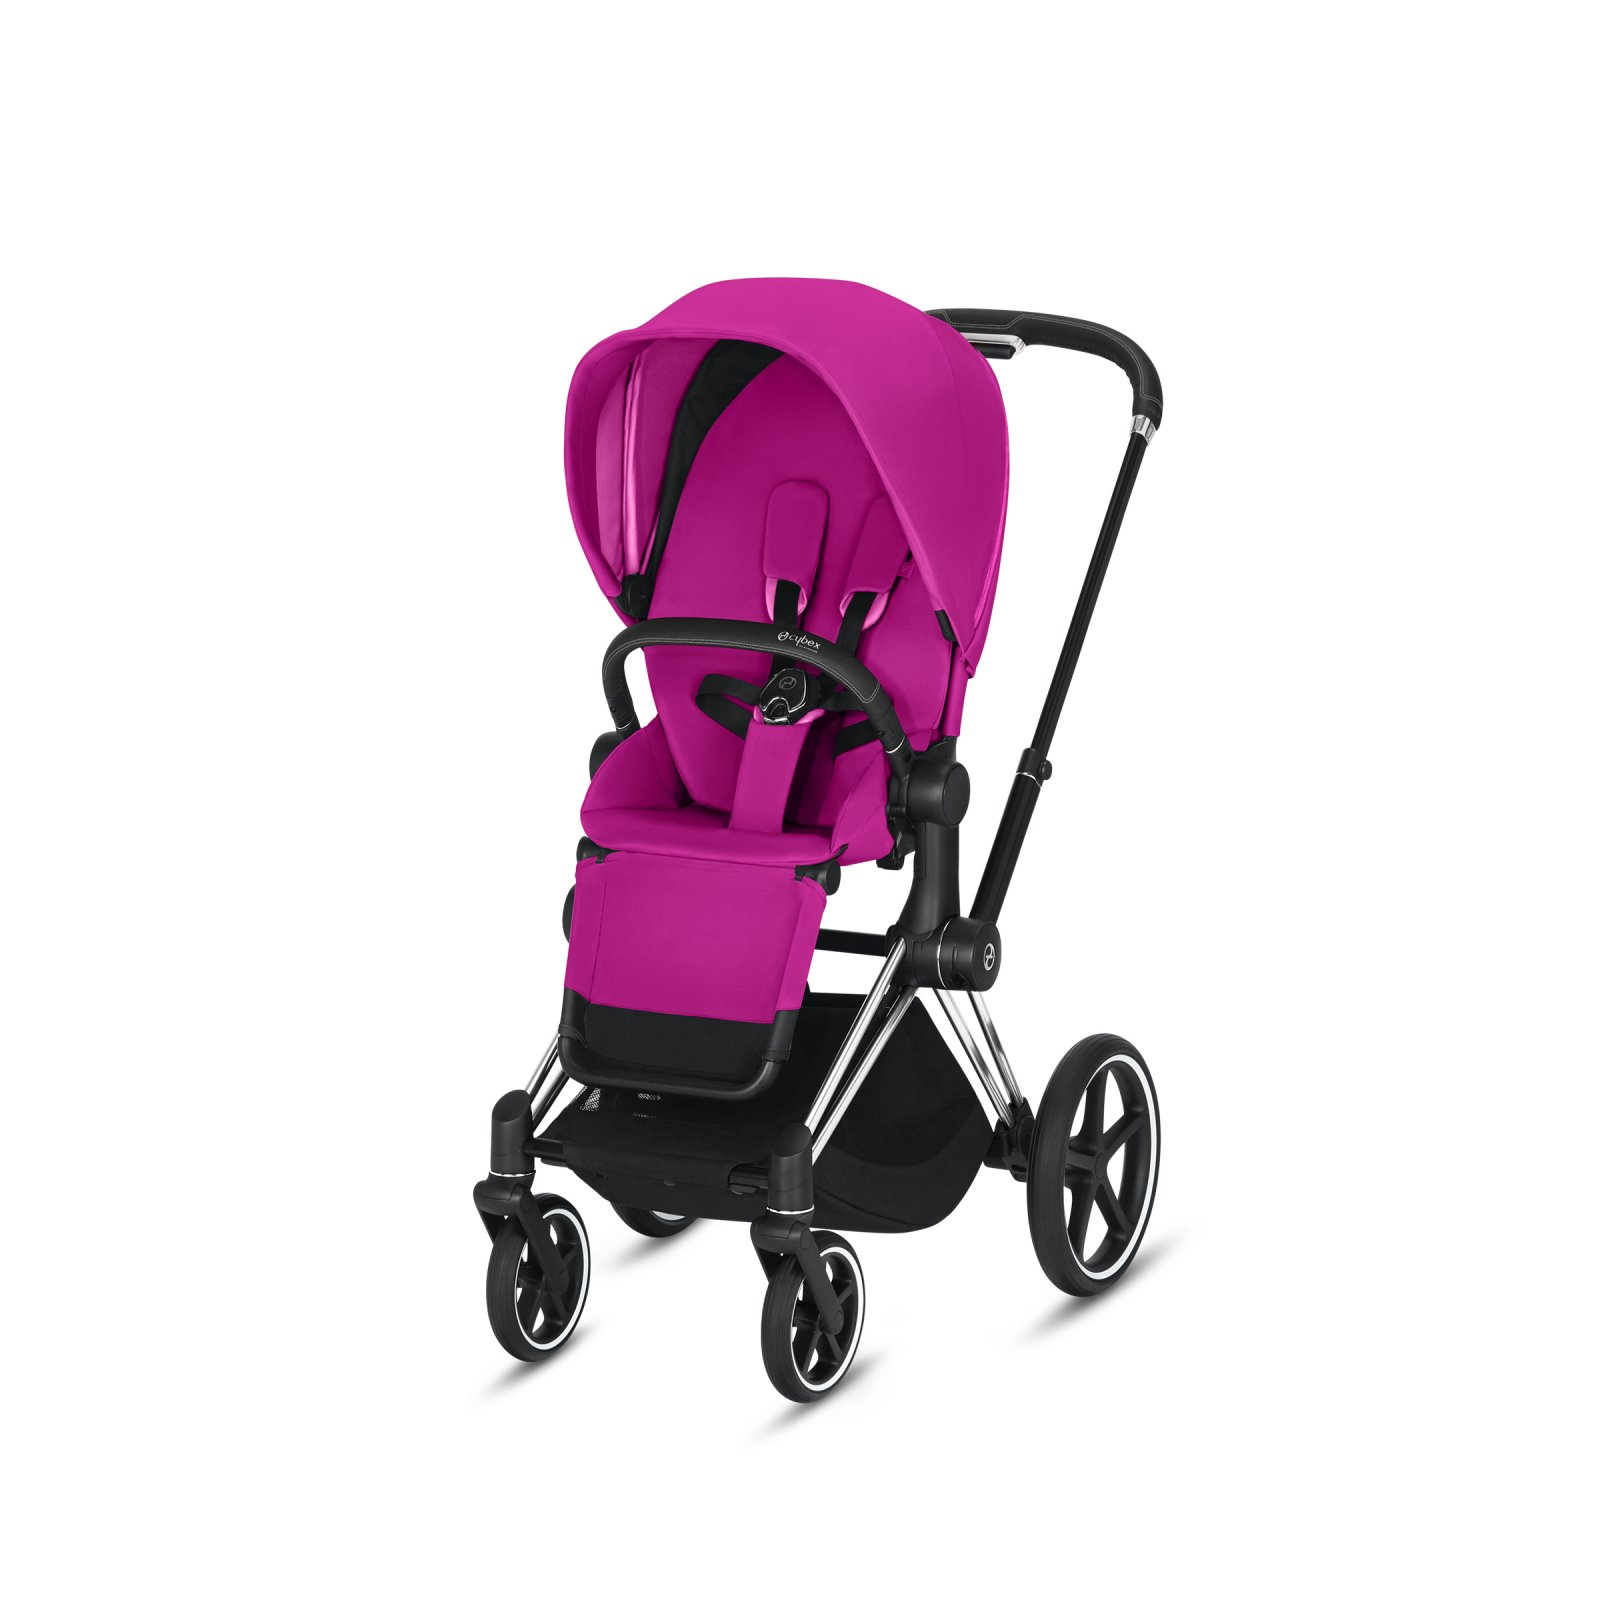 Cybex Priam Chrome/Black Frame with Fancy Pink Seat Pack